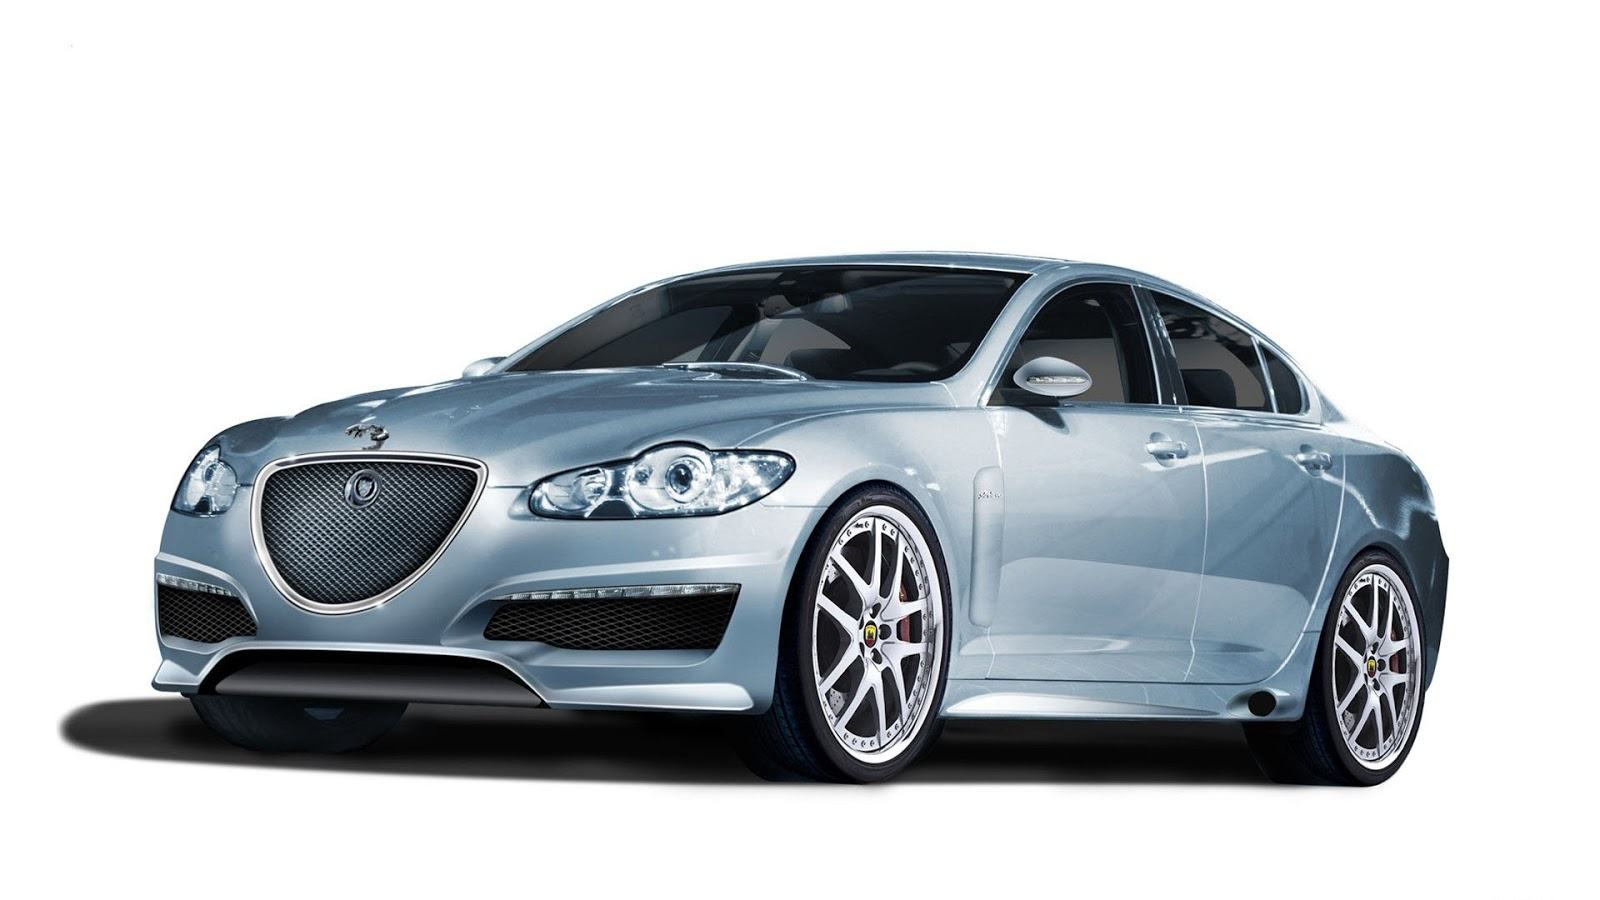 Jaguar Cars Images Hd: 2015 Jaguar Xf 17 Car Hd Wallpaper